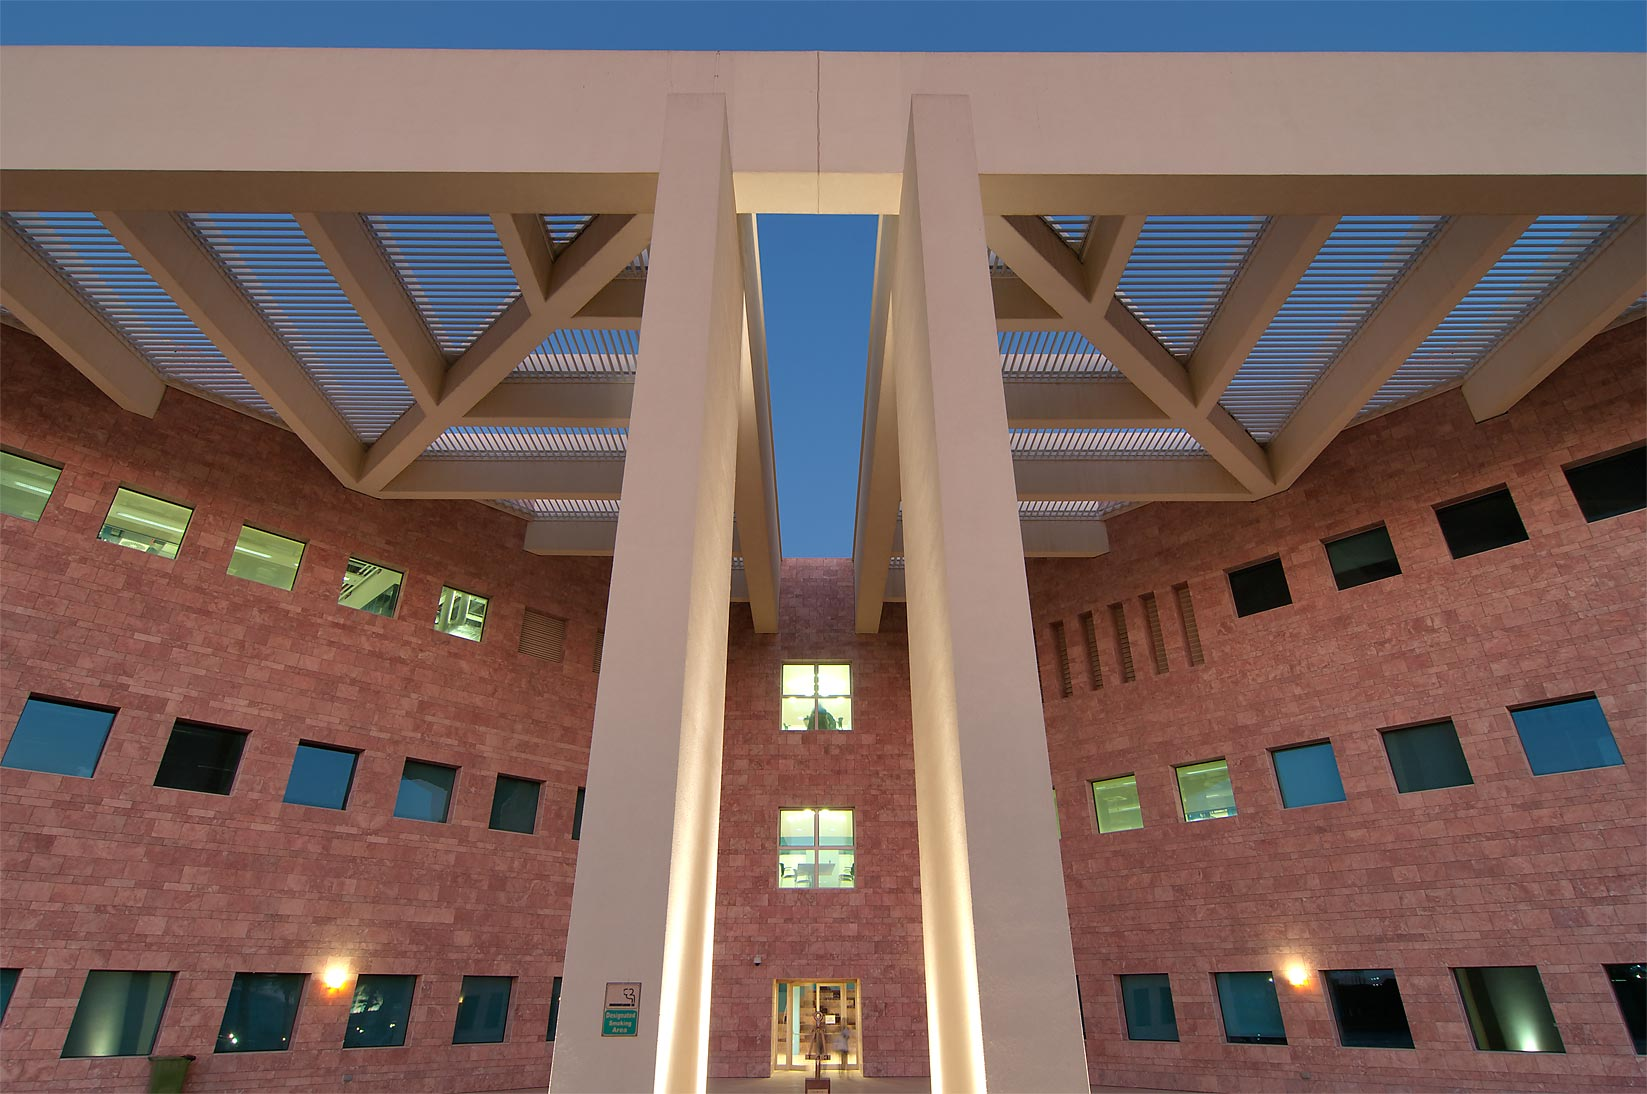 Beam structure at west entrance of TAMUQ research...City campus, at evening. Doha, Qatar